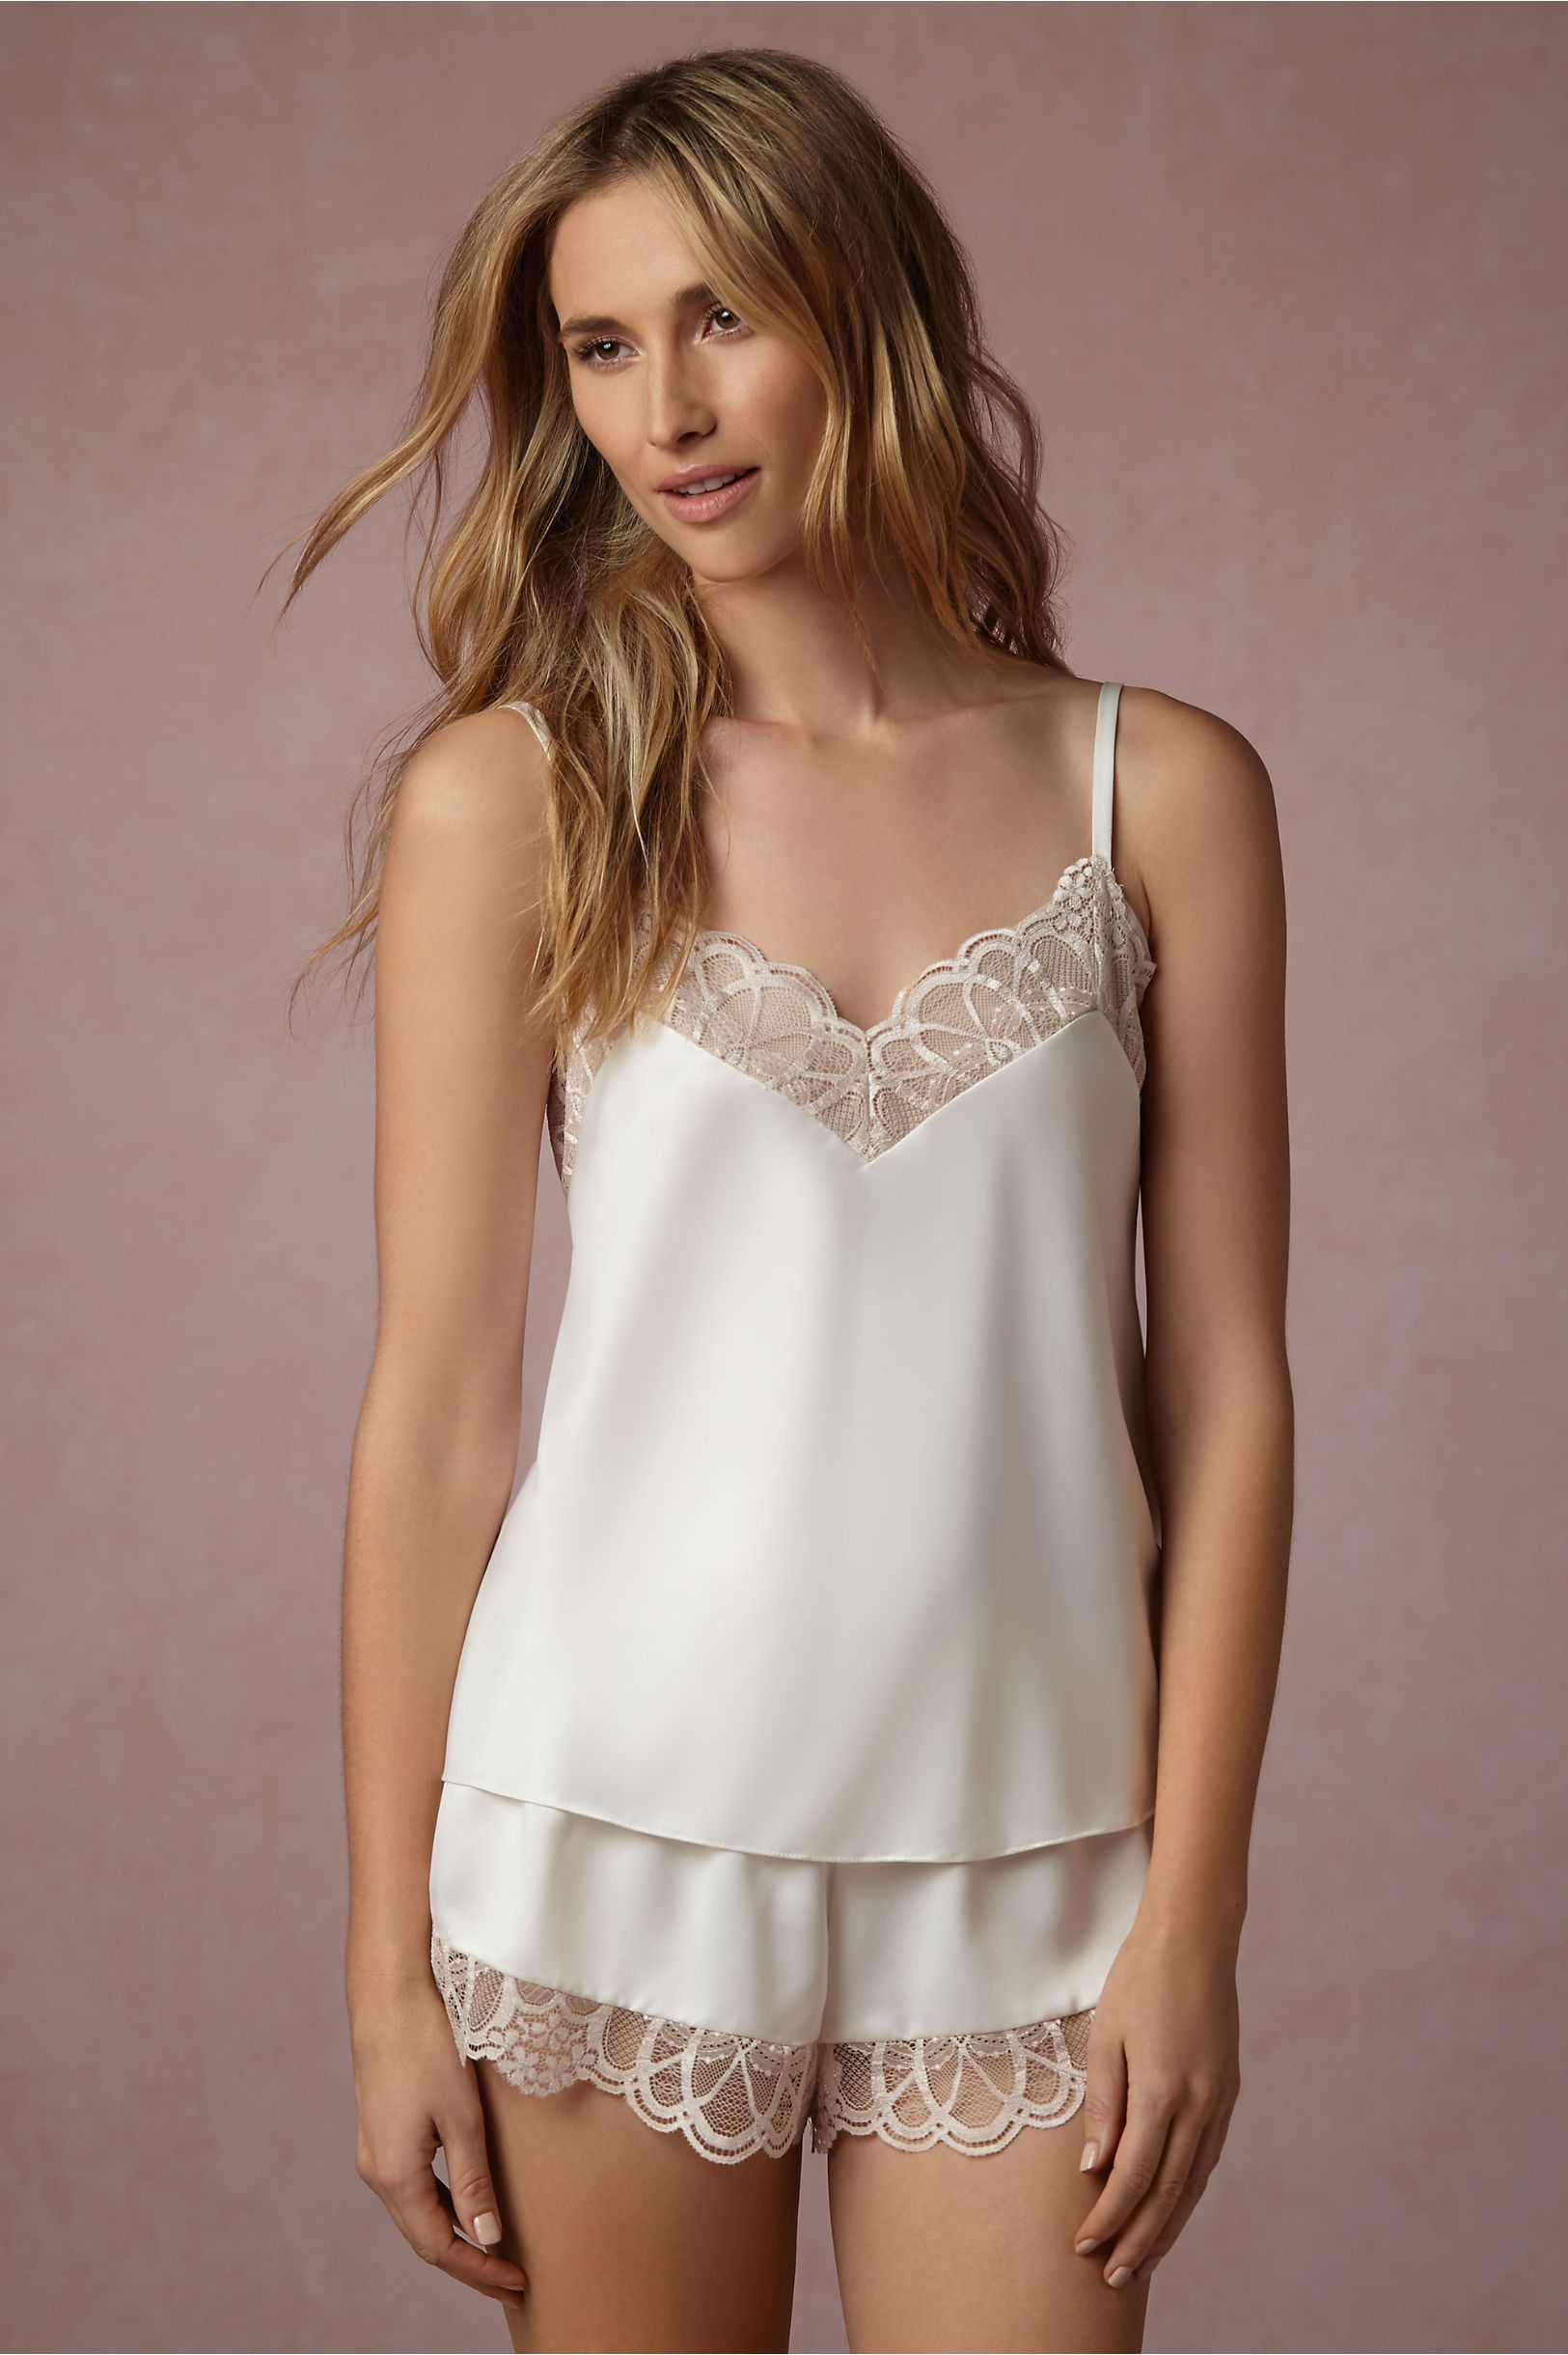 ccf742aa300 BHLDN Cosette Camisole in Bride Bridal Lingerie at BHLDN